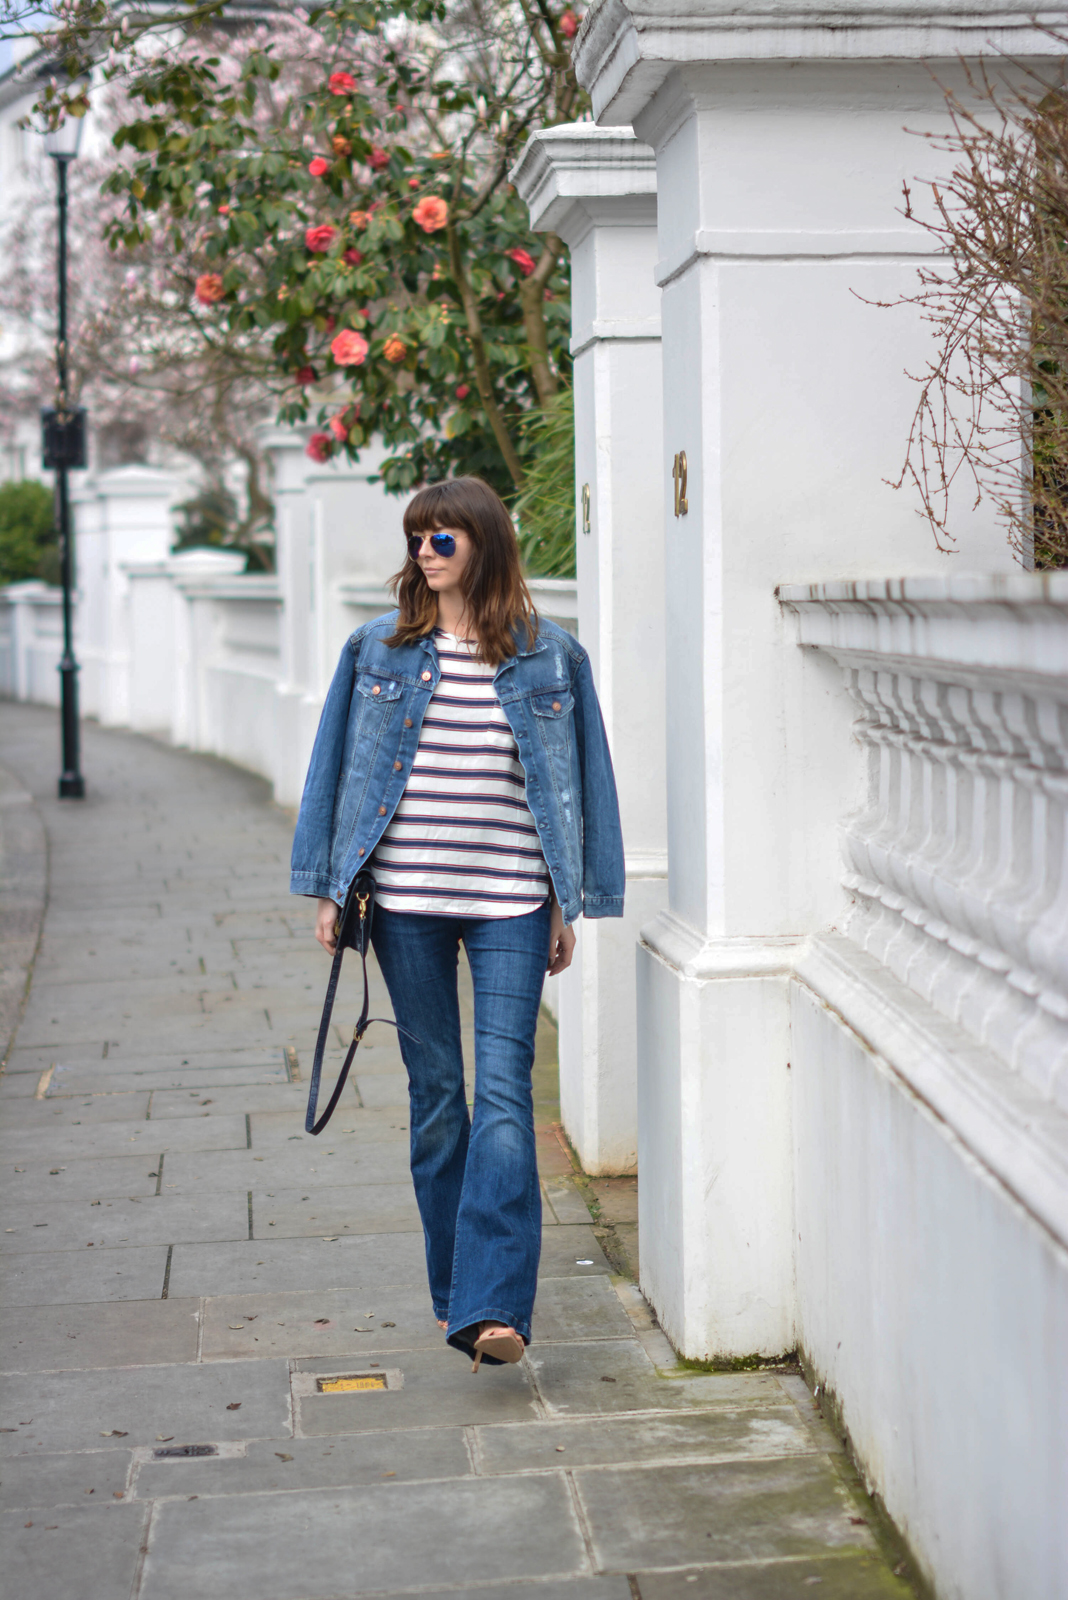 EJSTYLE - Emma Hill, Double denim, Spring outfit, flare jeans, stripe H&M top, H&M denim jacket, navy bag, nude sandals, OOTD, street style, polarised ray-bans